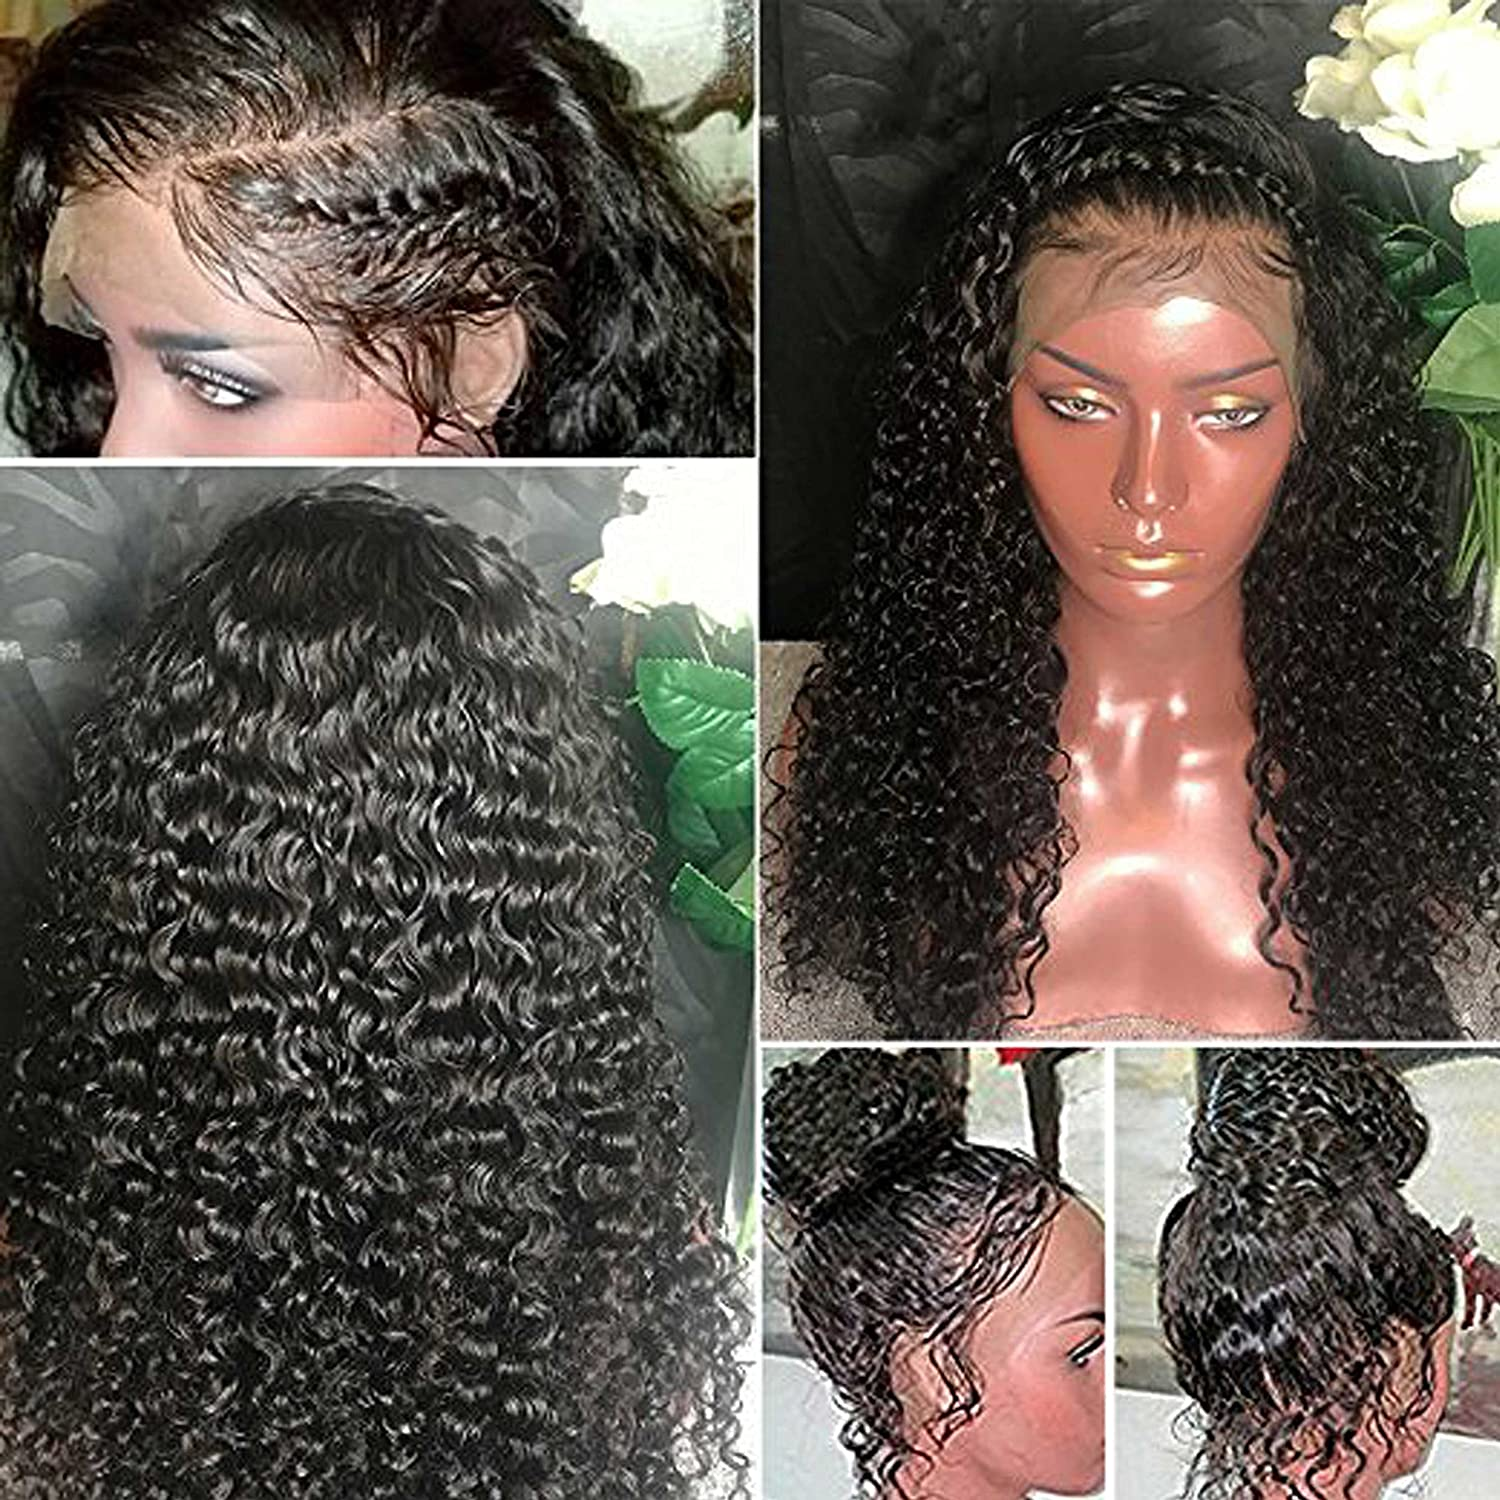 16cc72158 Amazon.com : Rishang Hair 180% Density 360 Lace Frontal Wig Deep Curly  Virgin Brazilian Hair Lace Wigs 7A Lace Front Human Hair Wigs Pre Plucked  With ...